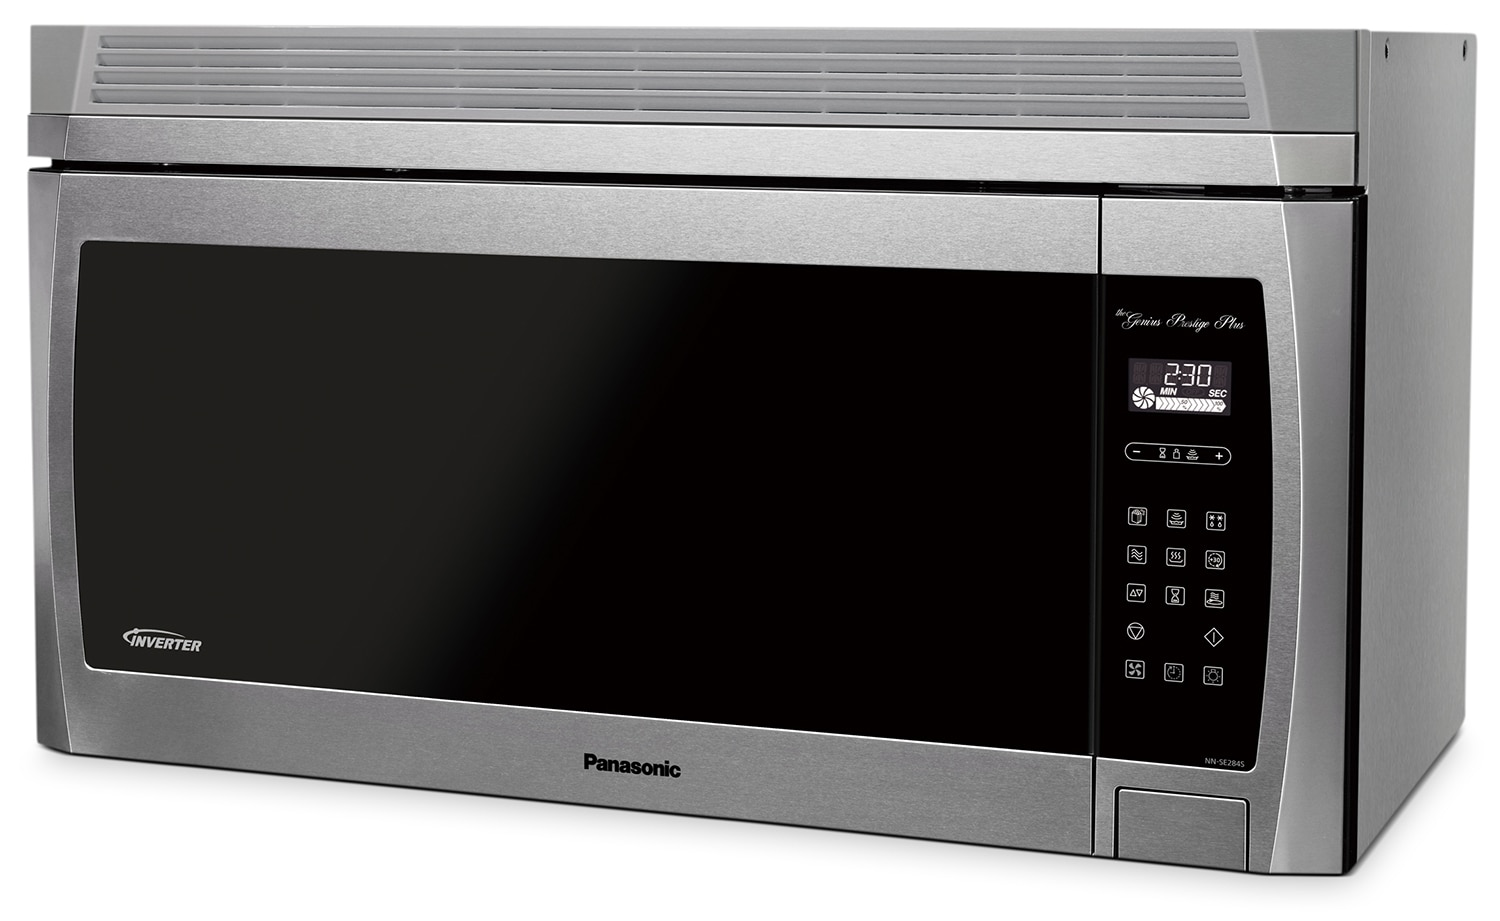 Panasonic® 2.0 Cu. Ft. Genius® Prestige® Plus Over-the-Range Microwave Oven - Stainless Steel